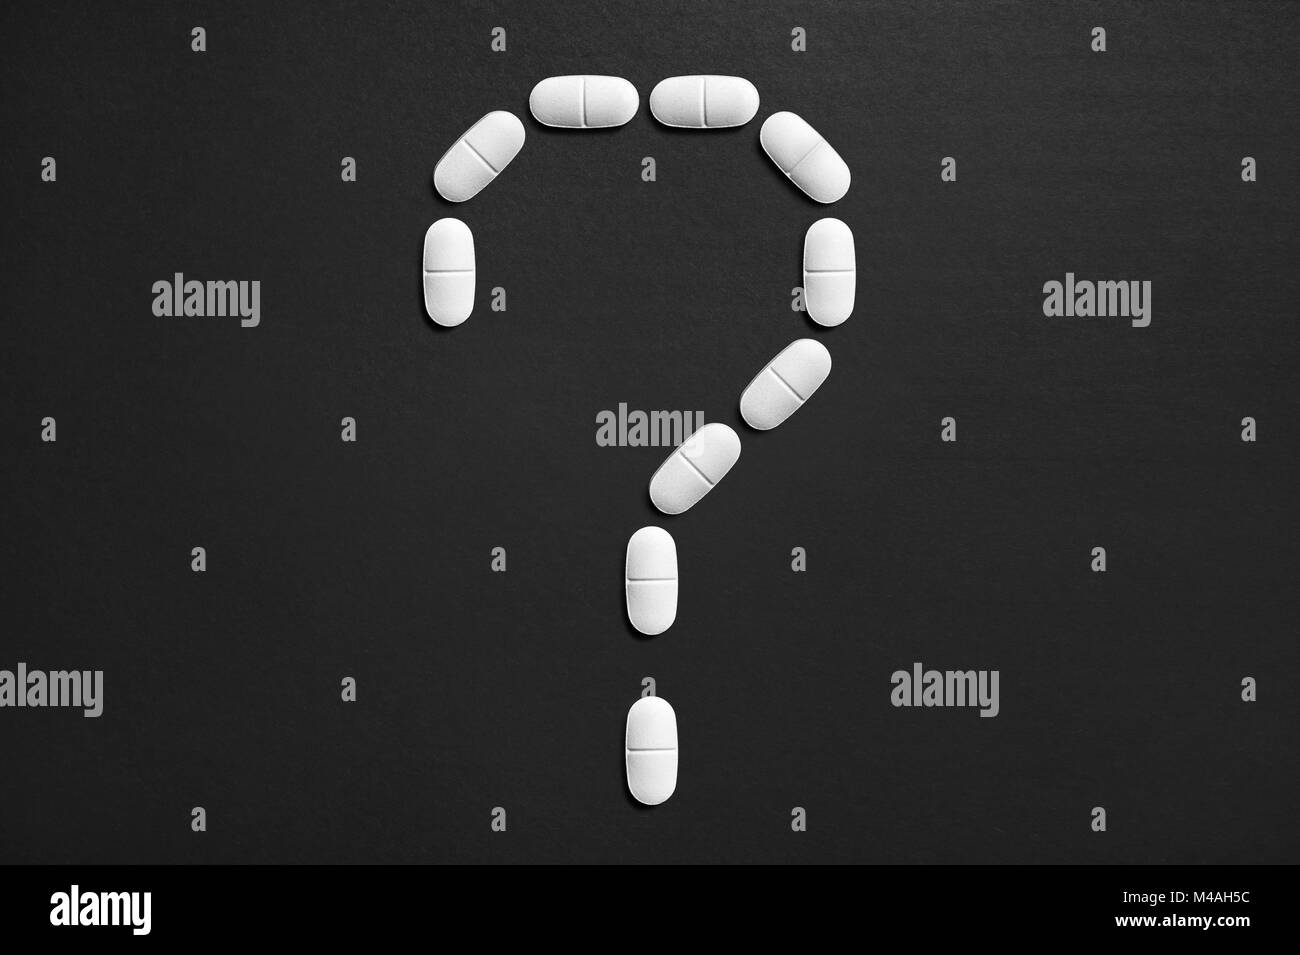 Question mark made from pills. New idea or innovation in science or pharmaceutical industry. Wondering medical issues. - Stock Image